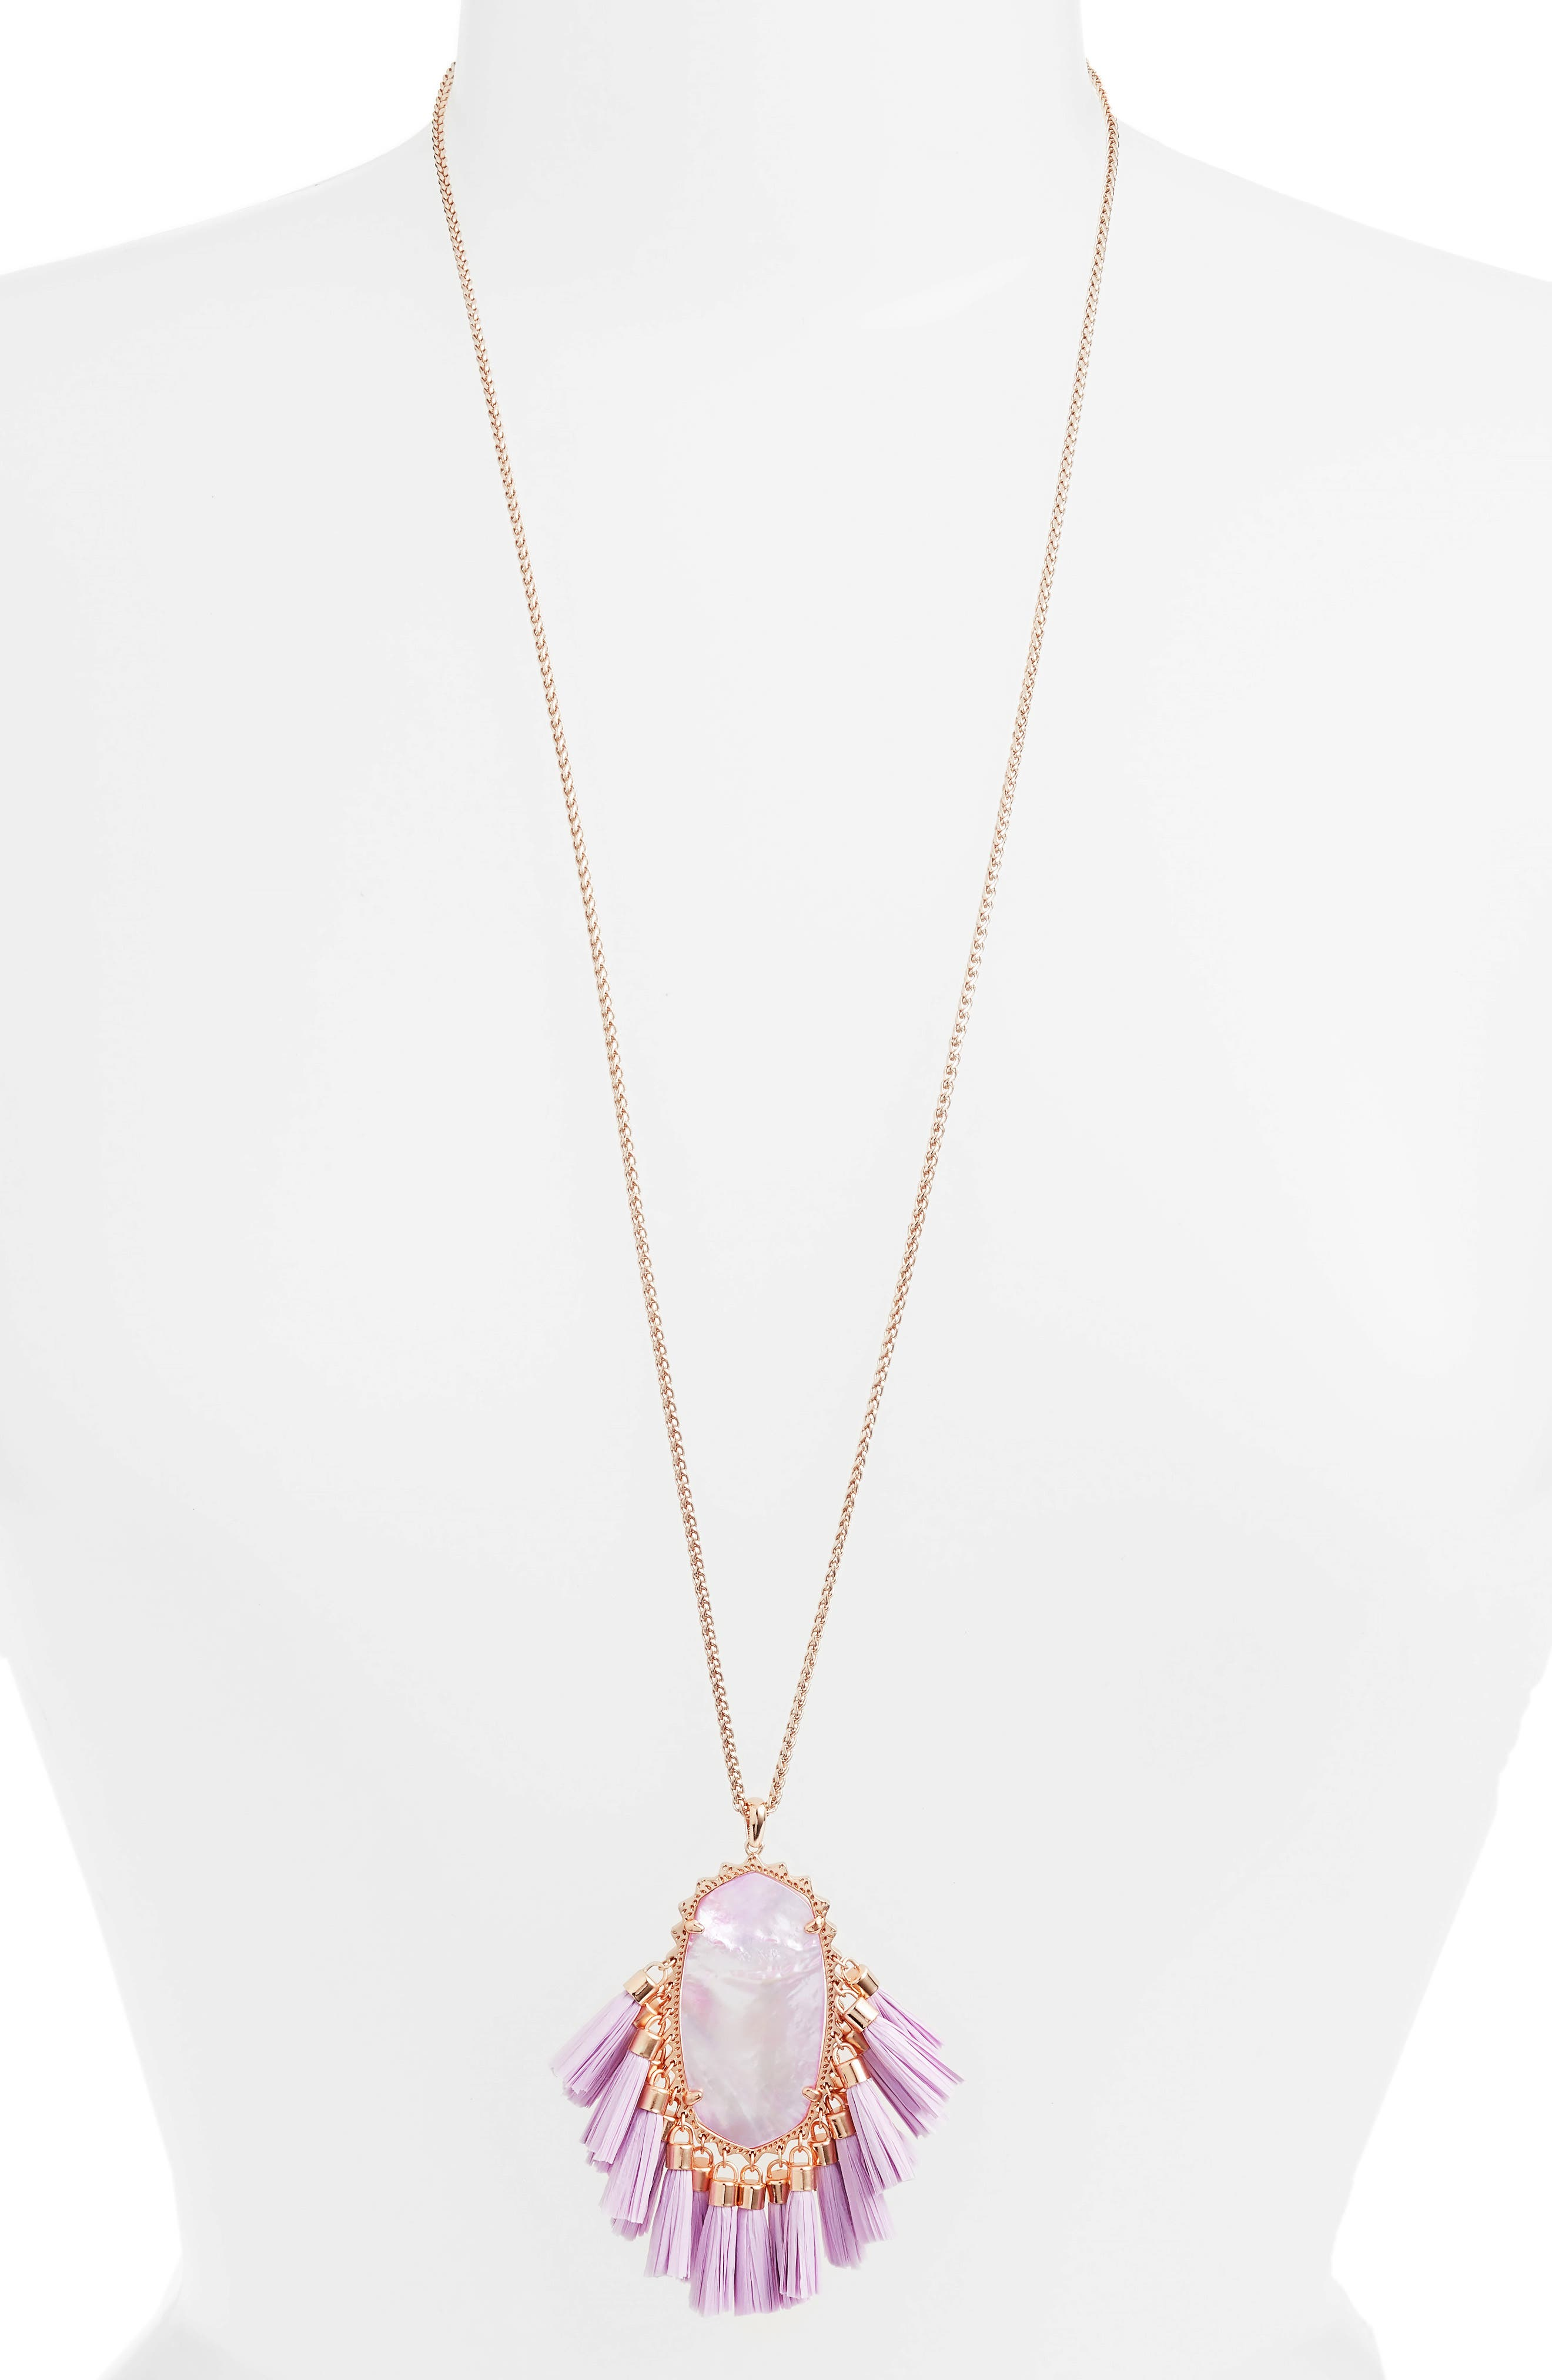 Betsy Pendant Necklace,                         Main,                         color, LILAC MOP/ ROSE GOLD